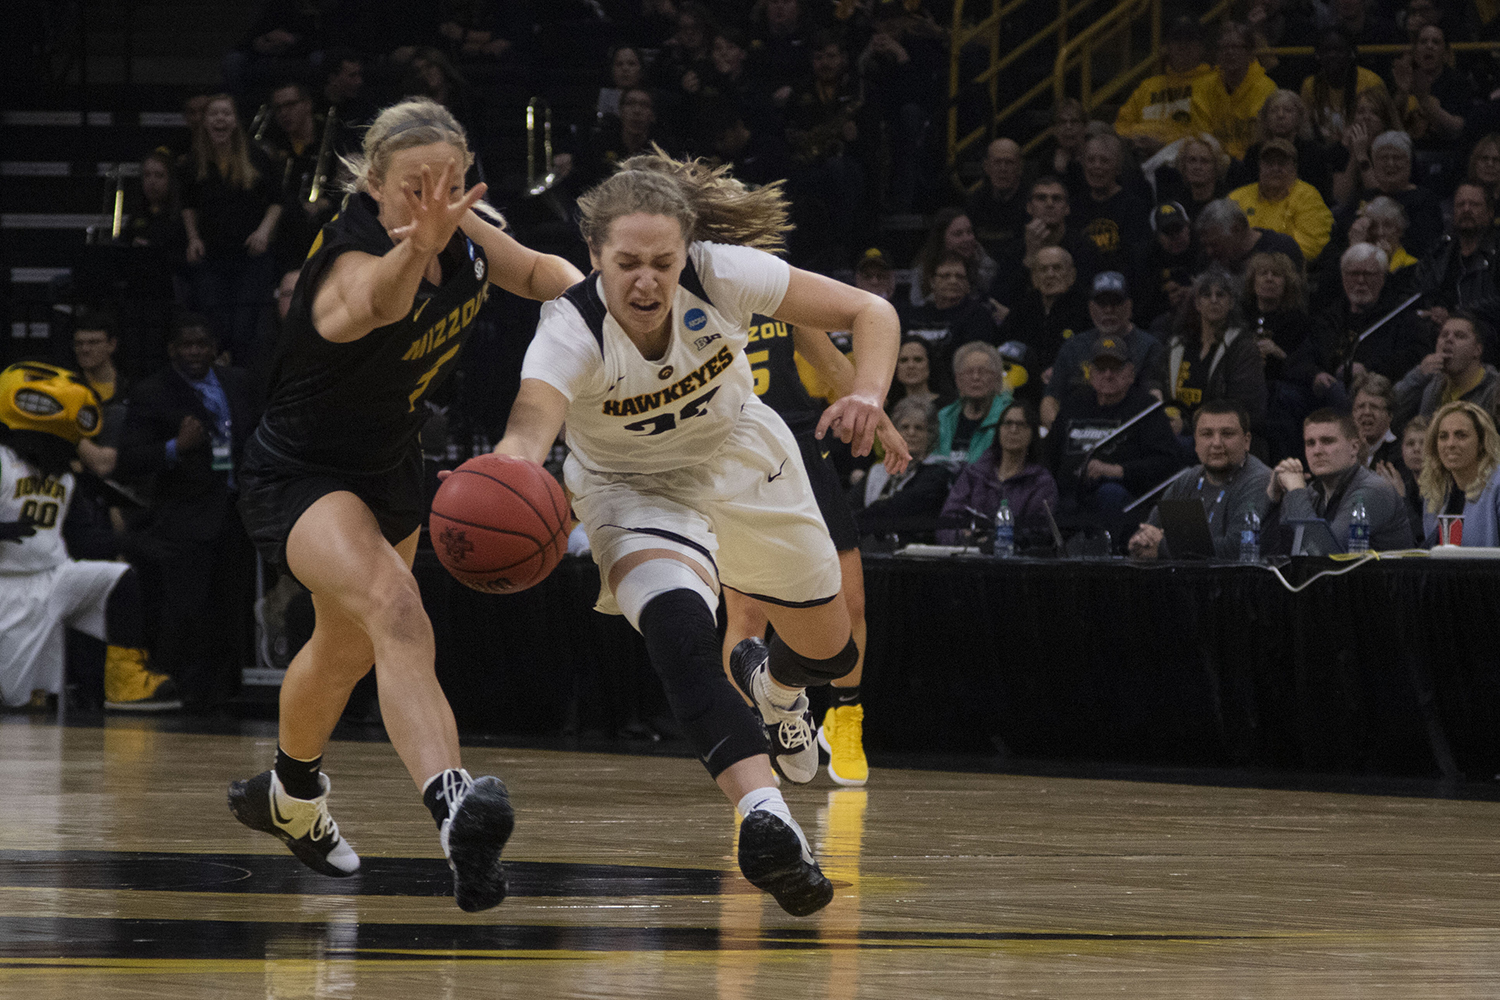 Iowa+guard+Kathleen+Doyle+steals+the+ball+from+Mizzou+guard+Sophie+Cunningham+during+the+Iowa%2FMizzou+NCAA+Tournament+second+round+women%27s+basketball+game+in+Carver-Hawkeye+Arena++on+Sunday%2C+March+24%2C+2019.+The+Hawkeyes+defeated+the+Tigers%2C+68-52.+